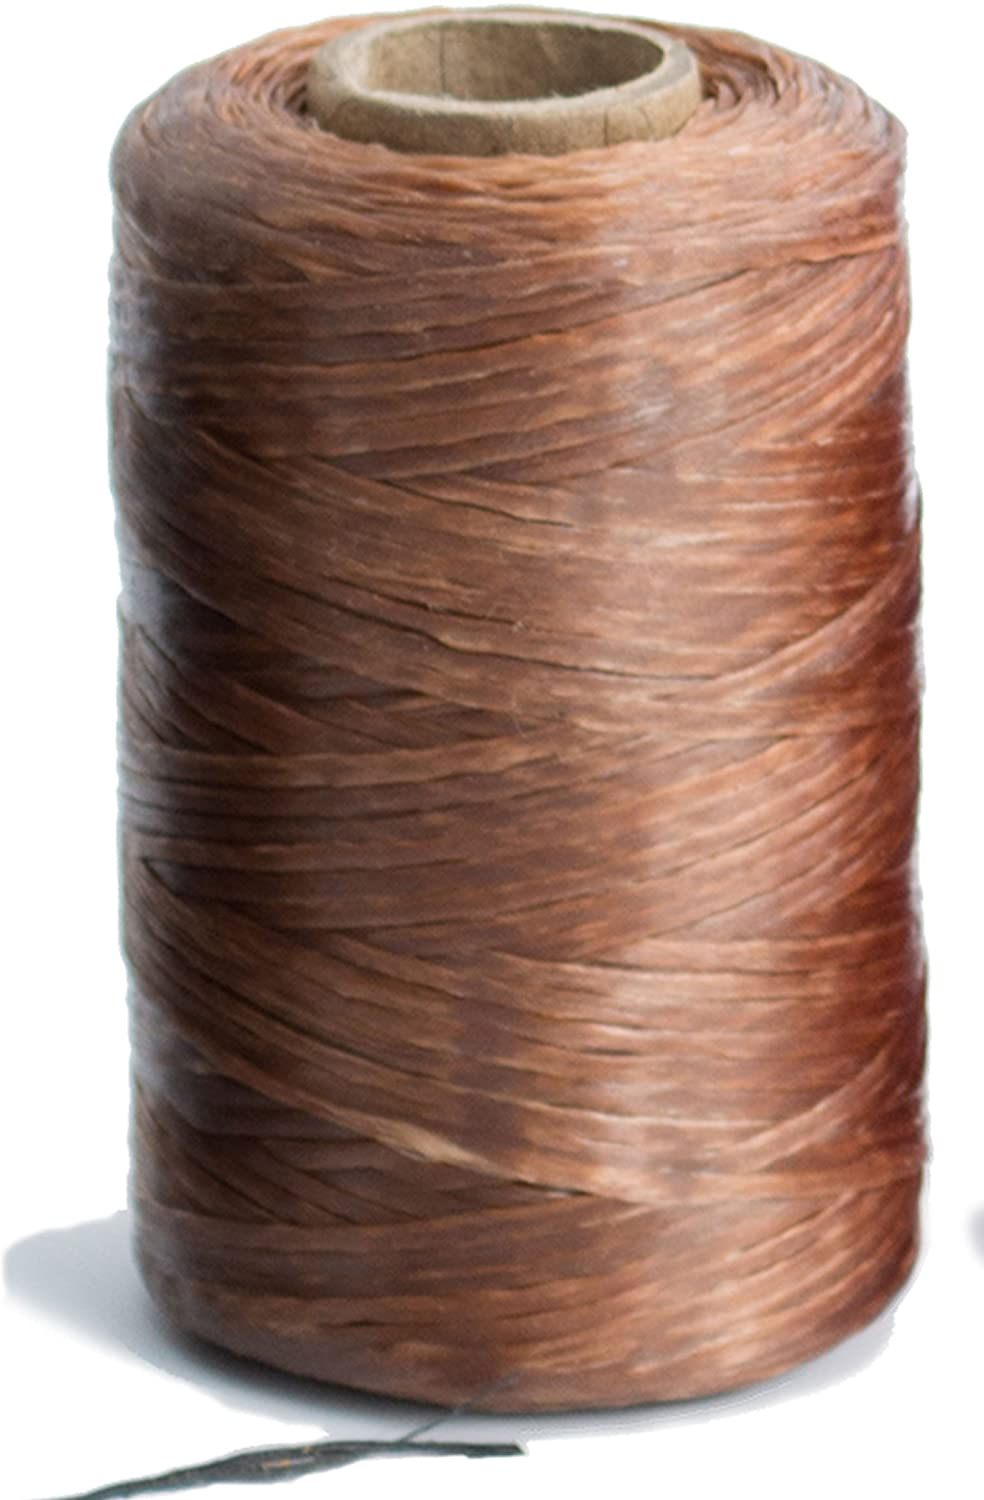 Artificial Sinew (5-Ply, 70 lb. Test, 300 Yards)